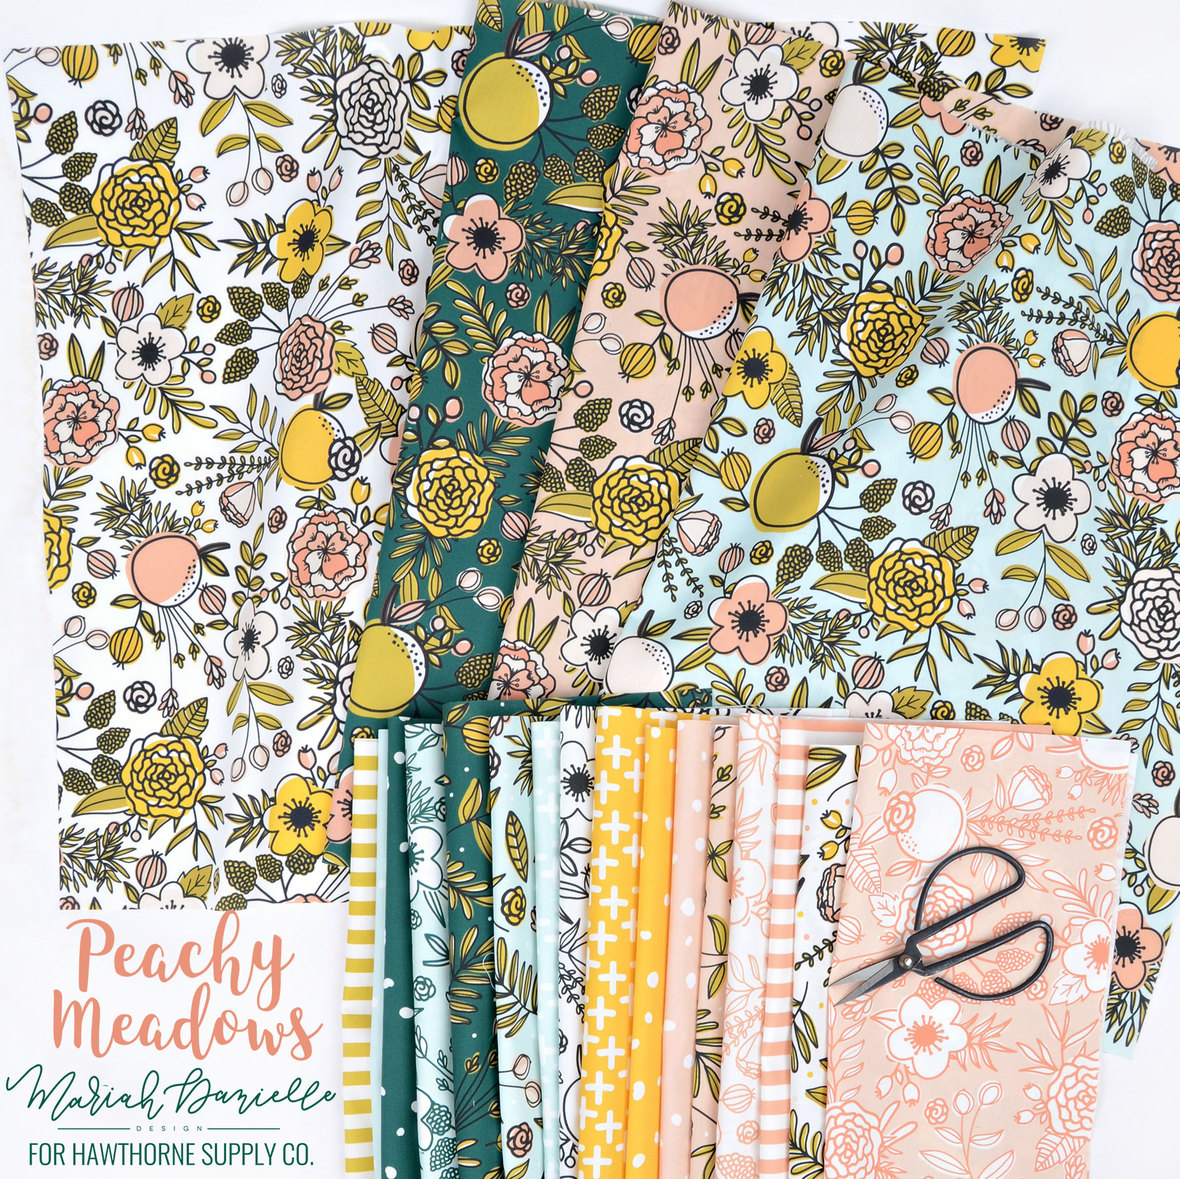 Peachy-Meadows-Fabric-Maria-Danielle-Design-for-Hawthorne-Supply-Co